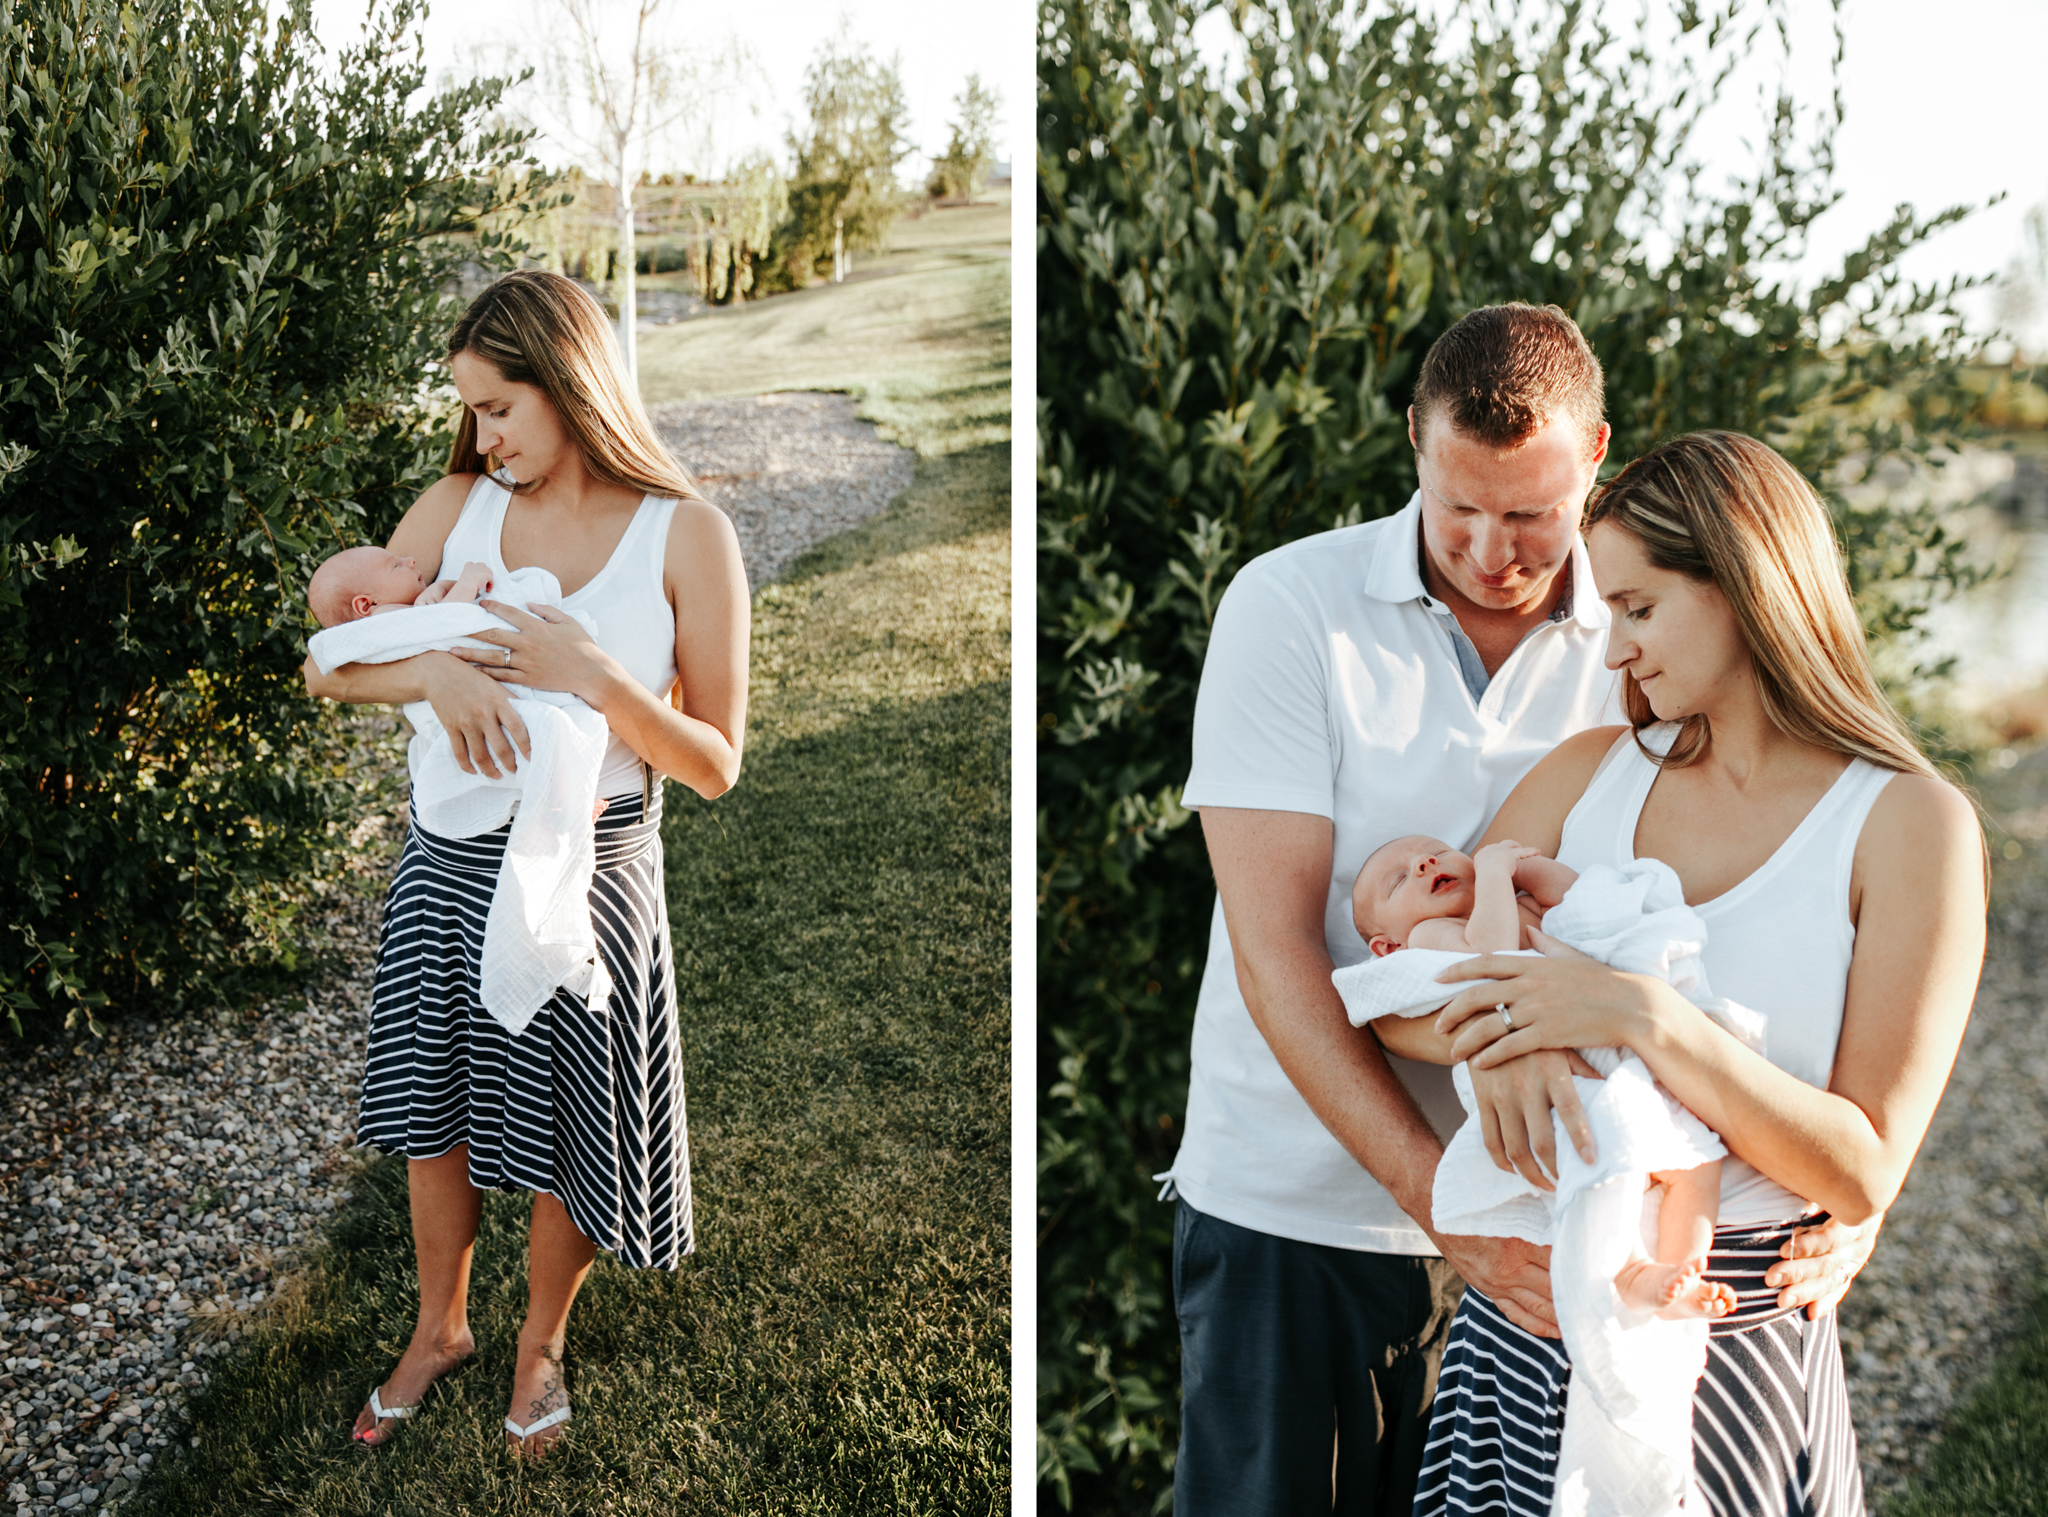 lethbridge-birth-photographer-love-and-be-loved-photography-daxon-newborn-picture-image-photo-32-2.jpg